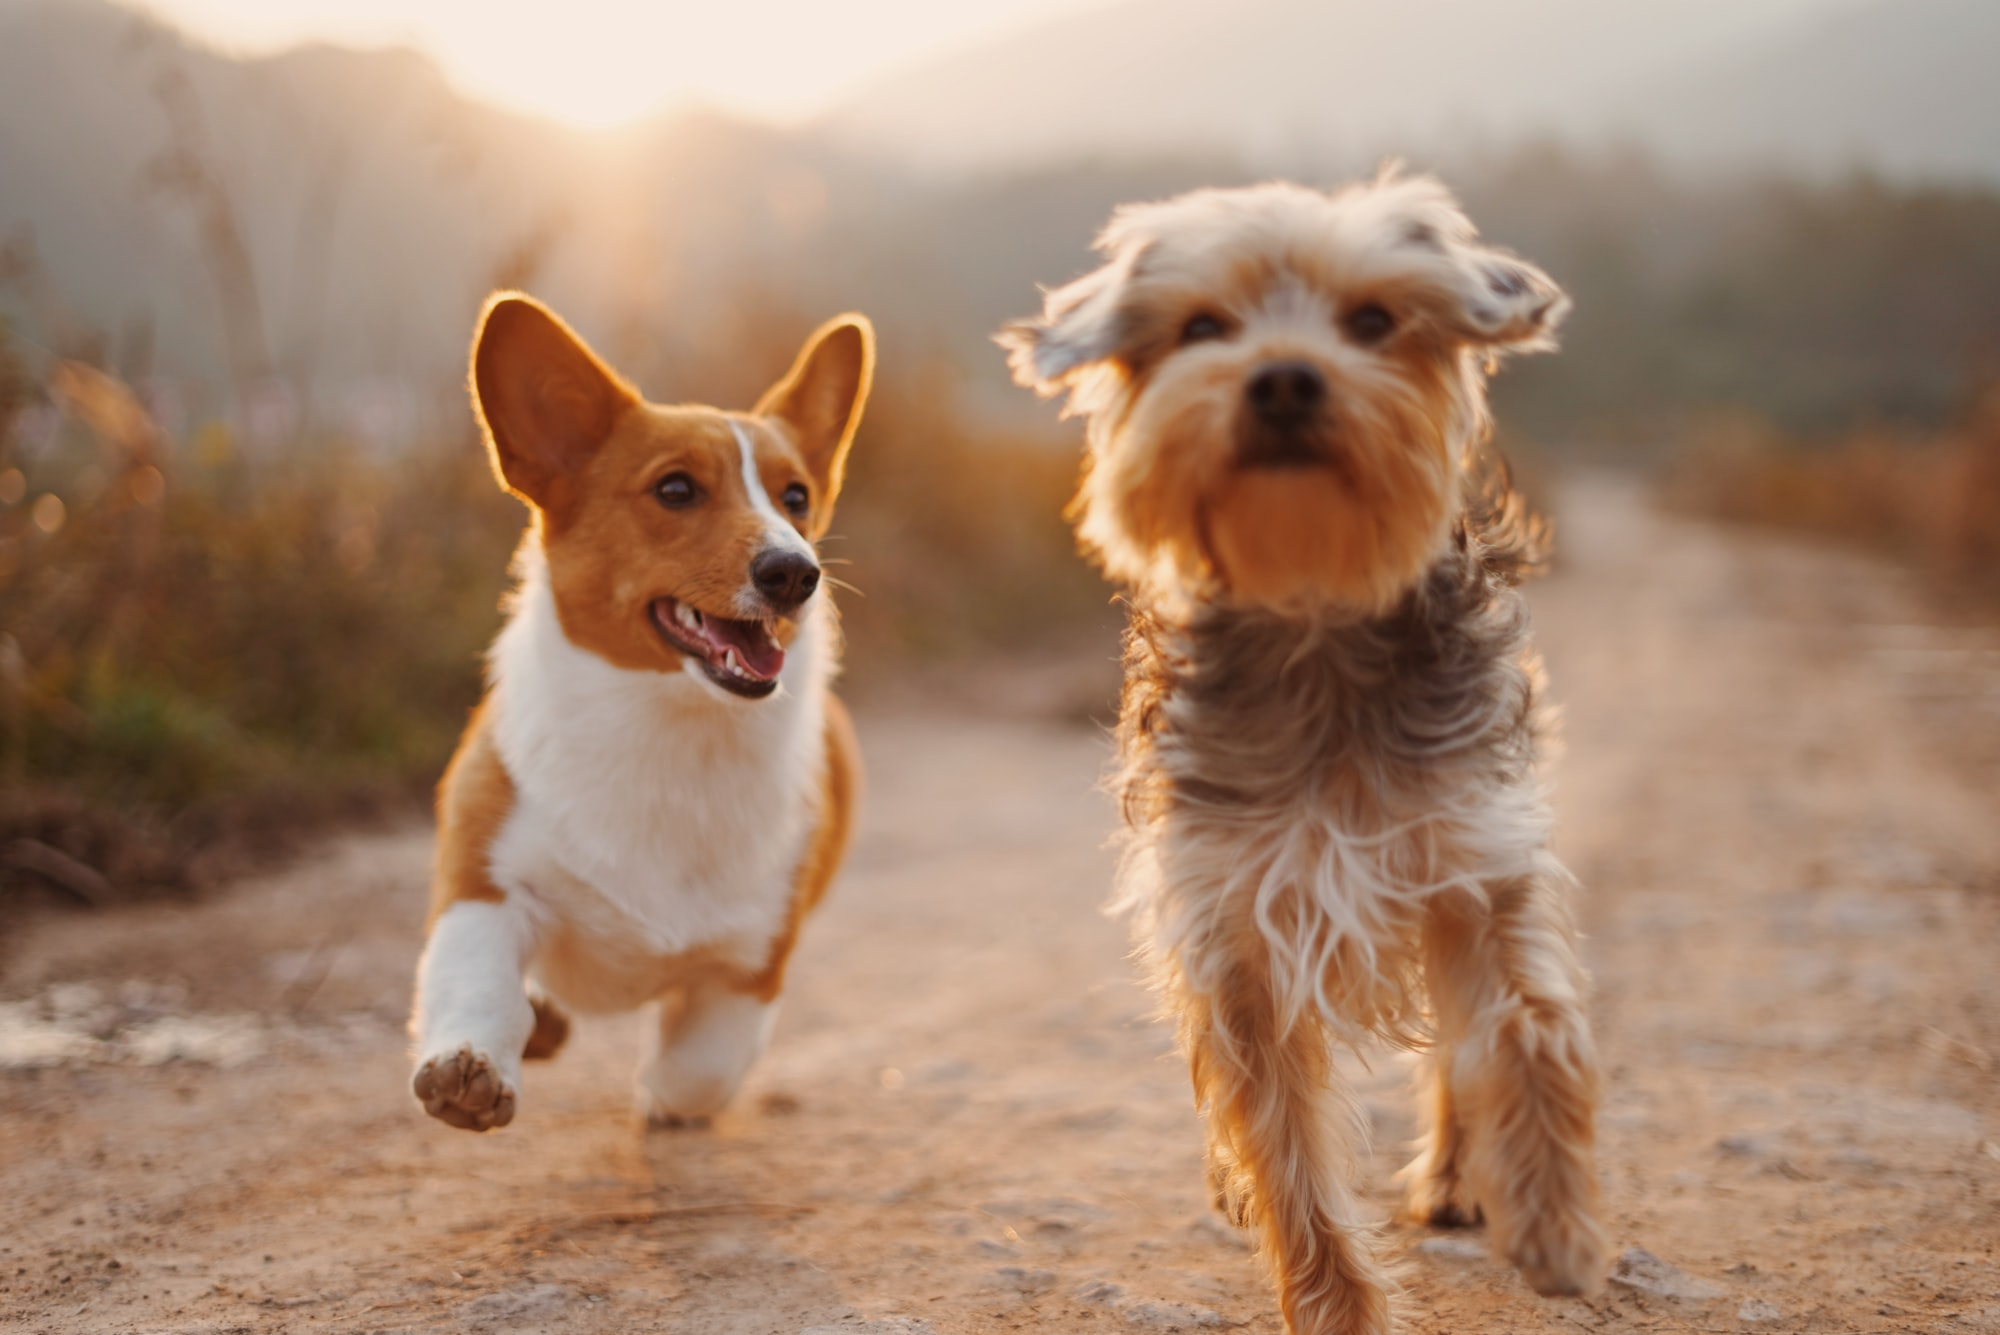 Choosing the right dog breed.